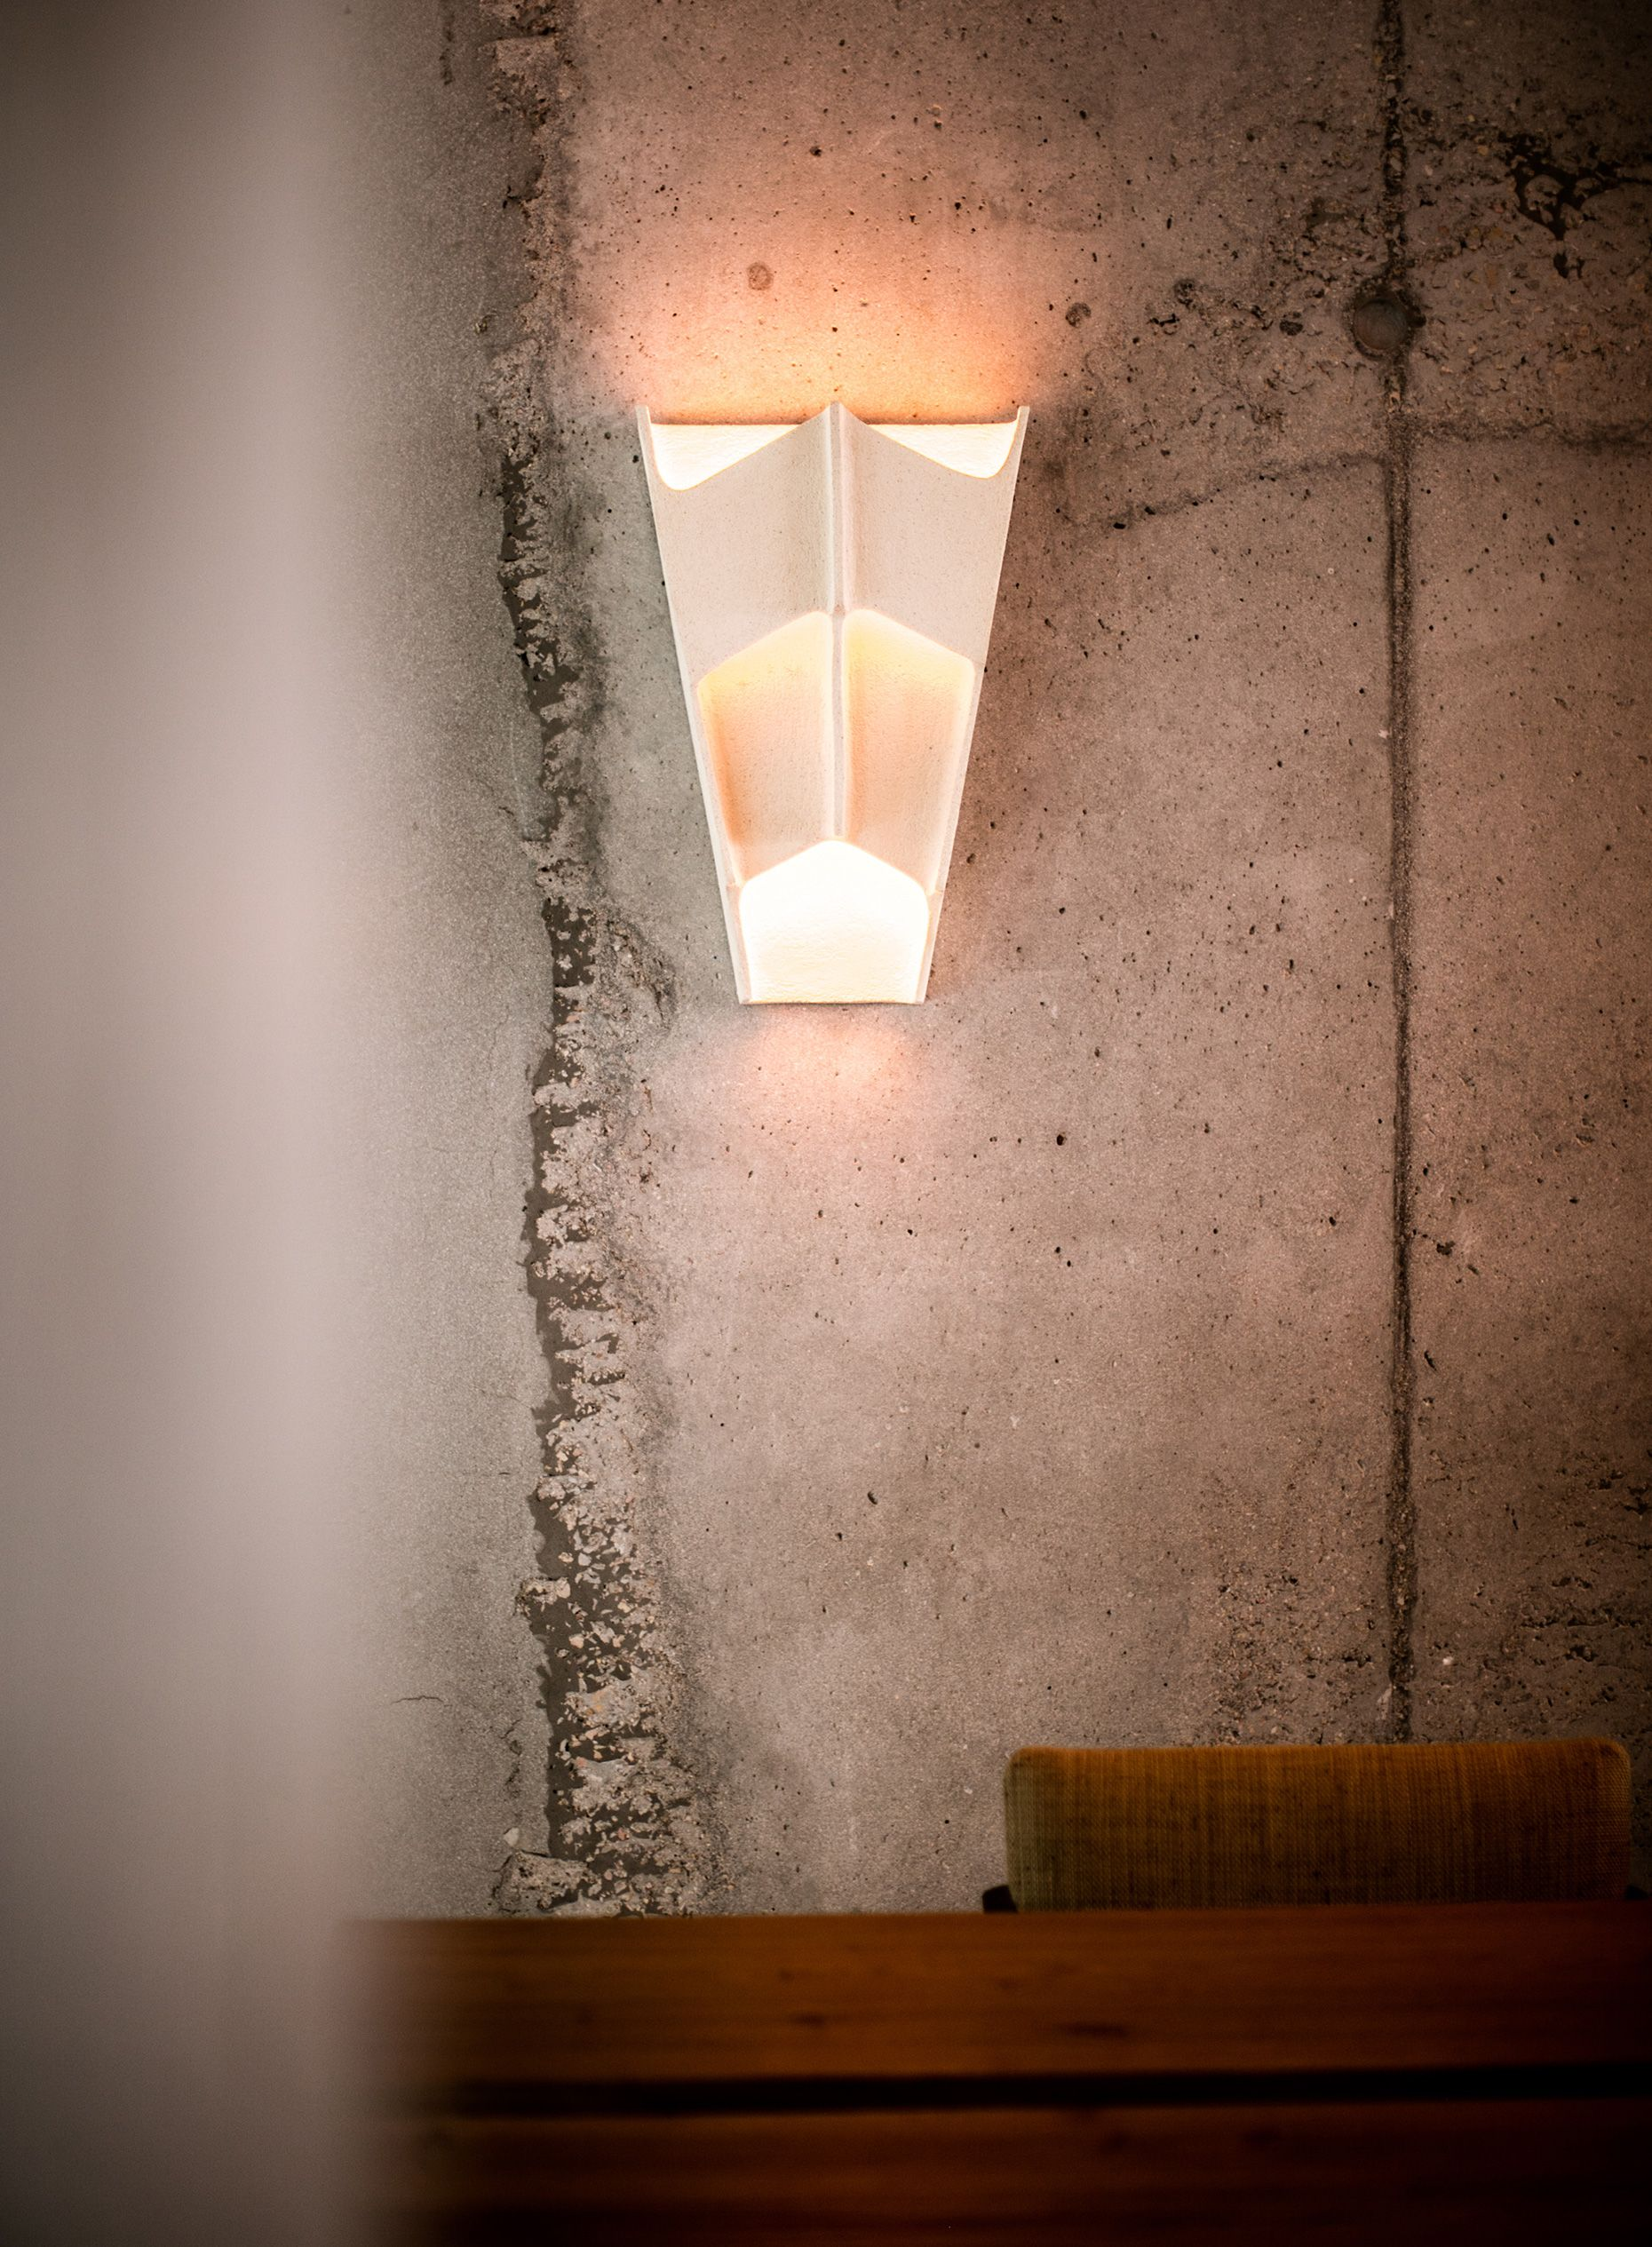 hotel-les-roches-rouges-lamp-386